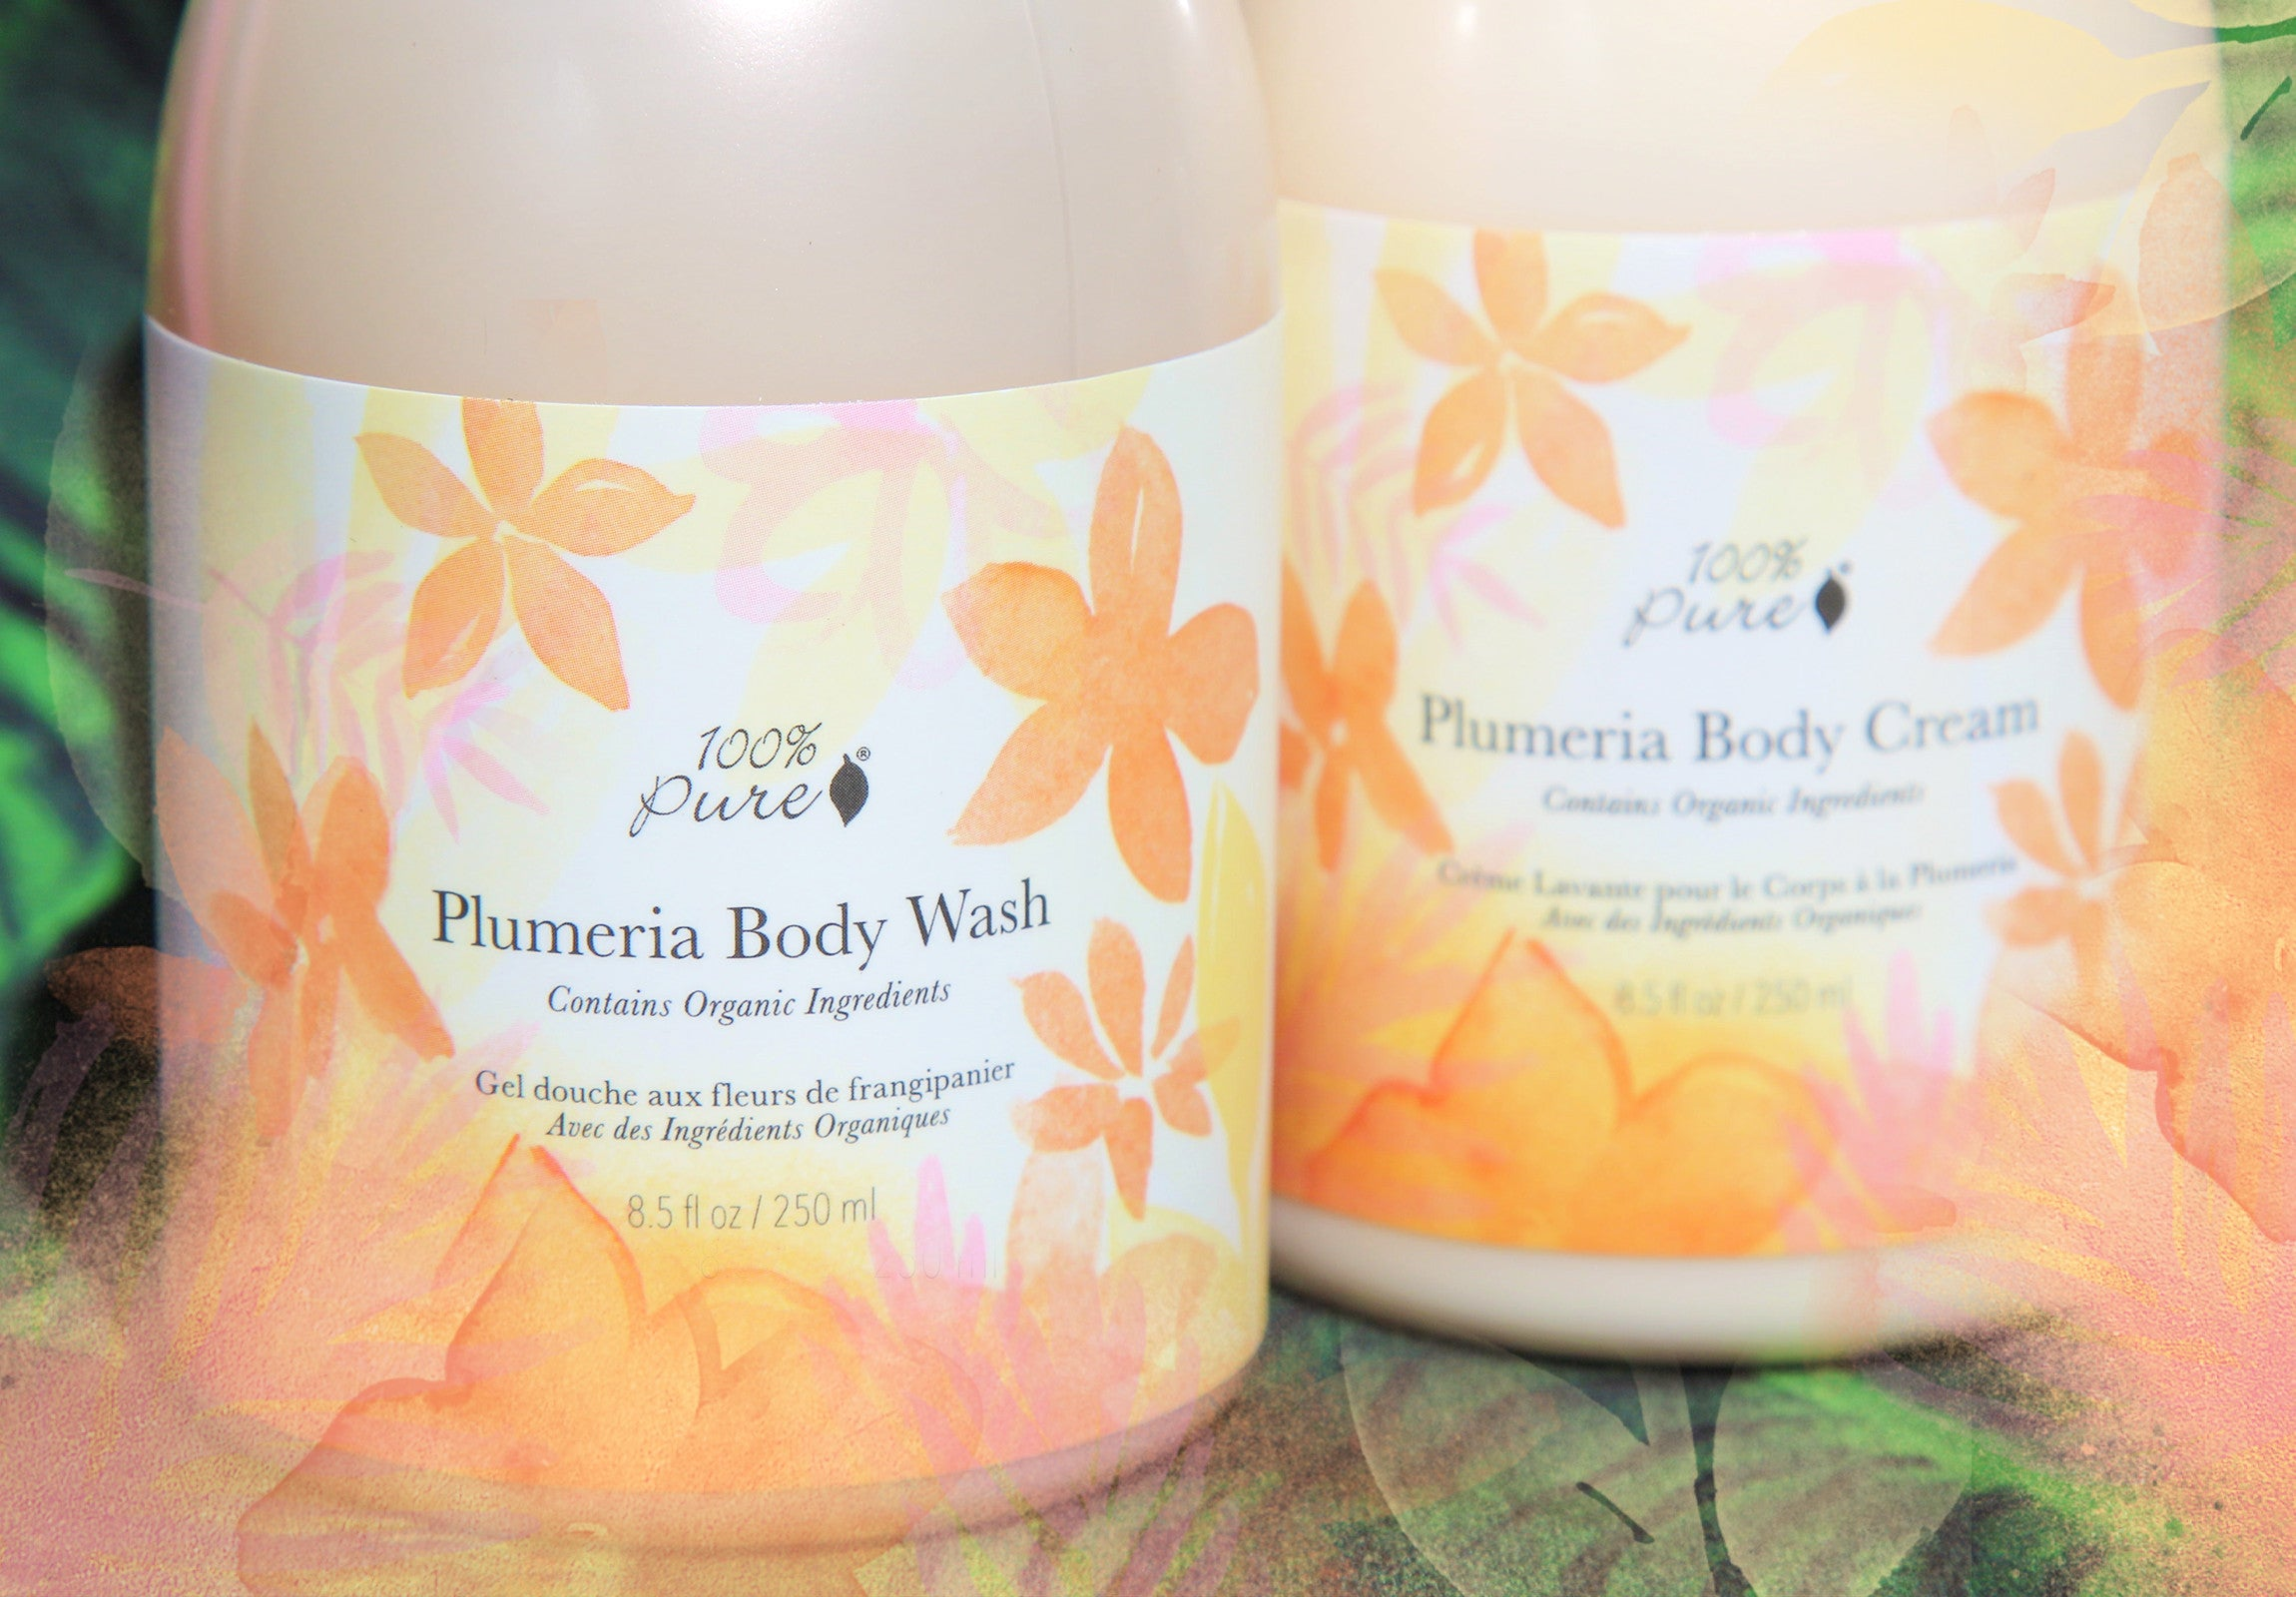 100% Pure Plumeria Body Wash